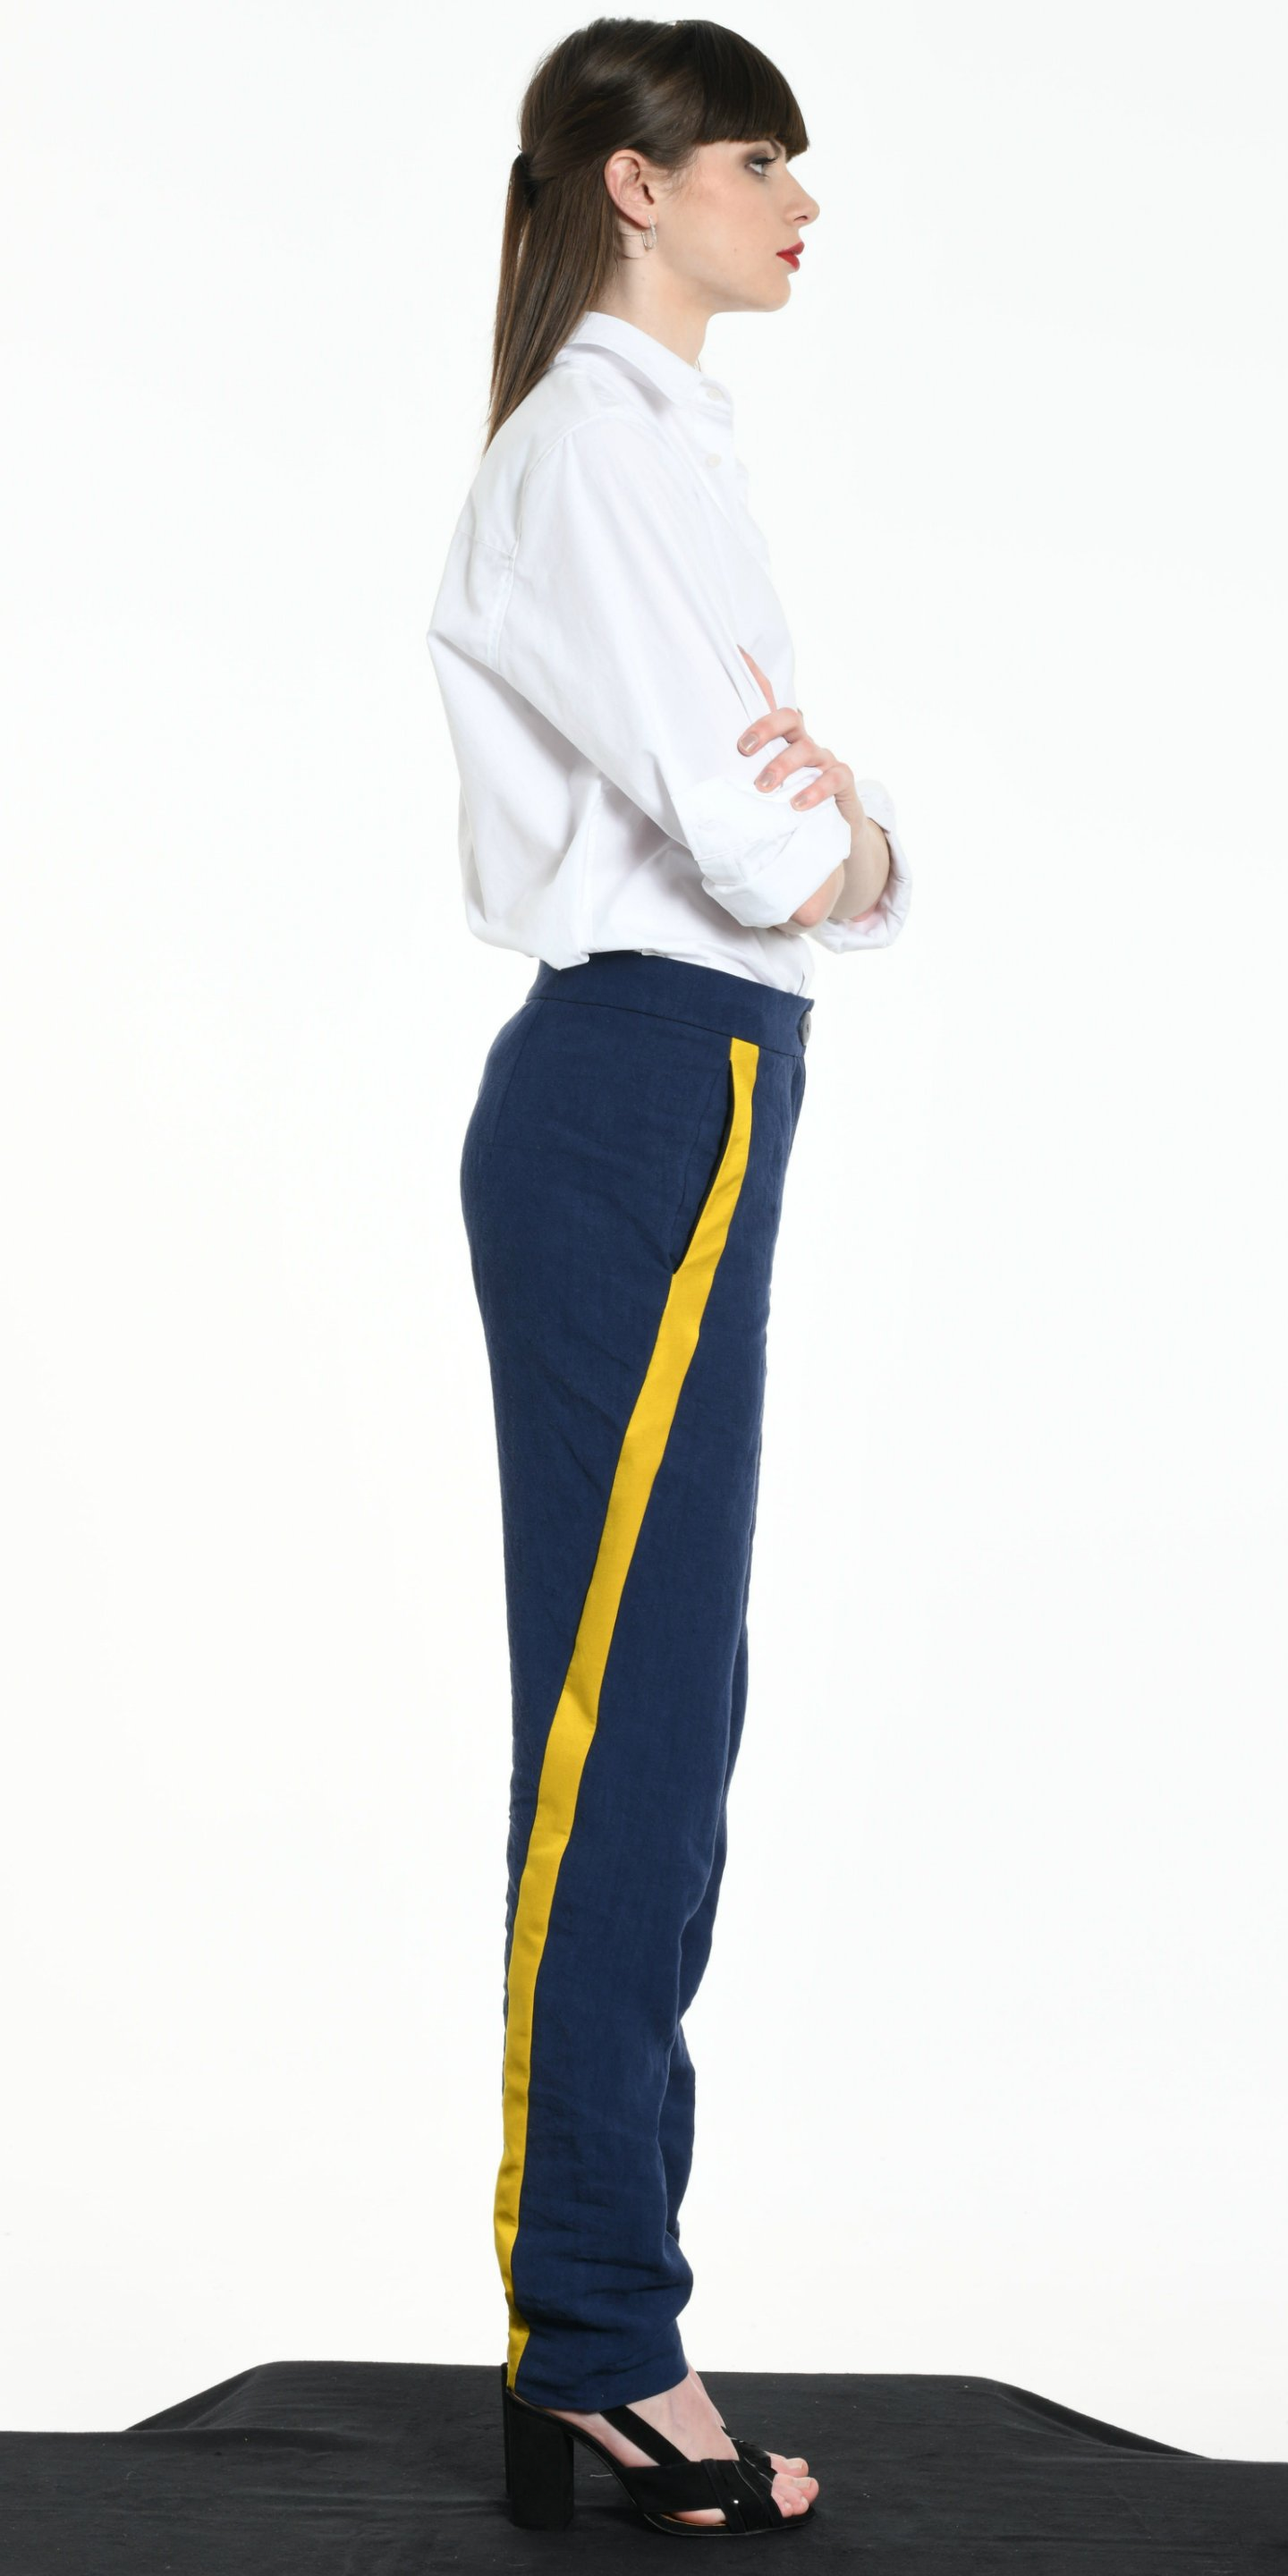 TROUSERS BLUE WITH YELLOW STRIP from BEARD & FRINGE